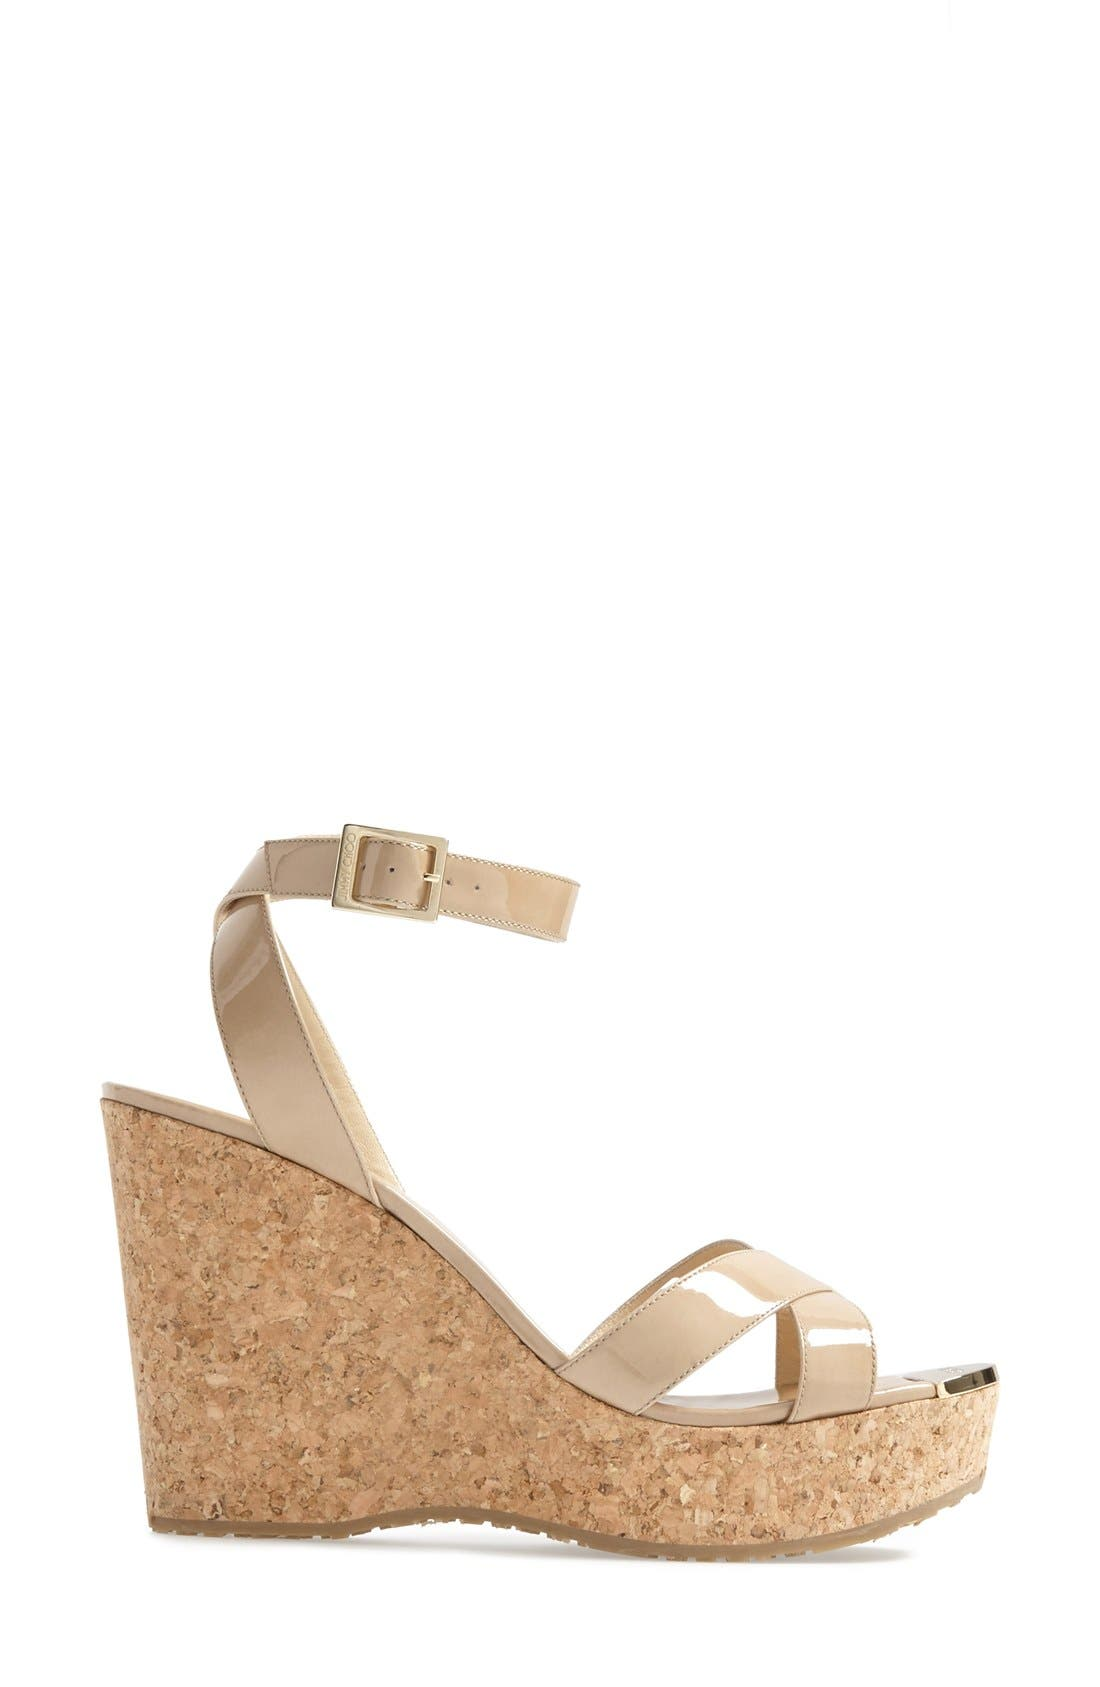 JIMMY CHOO,                             'Papyrus' Cork Wedge Sandal,                             Alternate thumbnail 2, color,                             250